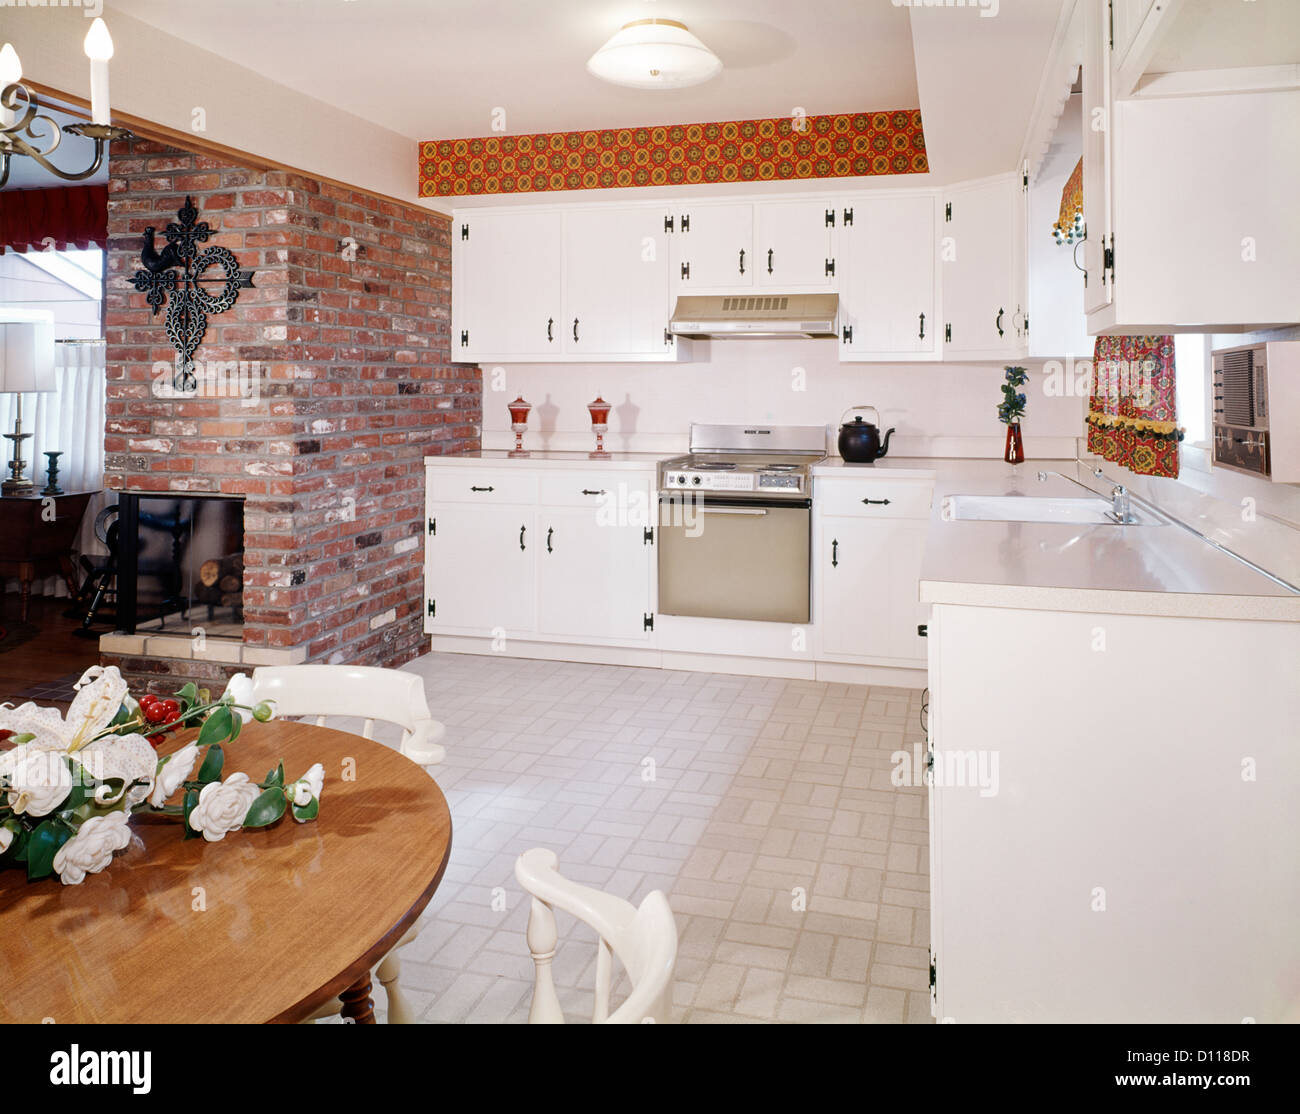 1960s KITCHEN INTERIOR WITH BRICK WALL AND WHITE COUNTRY CABINETS Stock Photo, Royalty Free